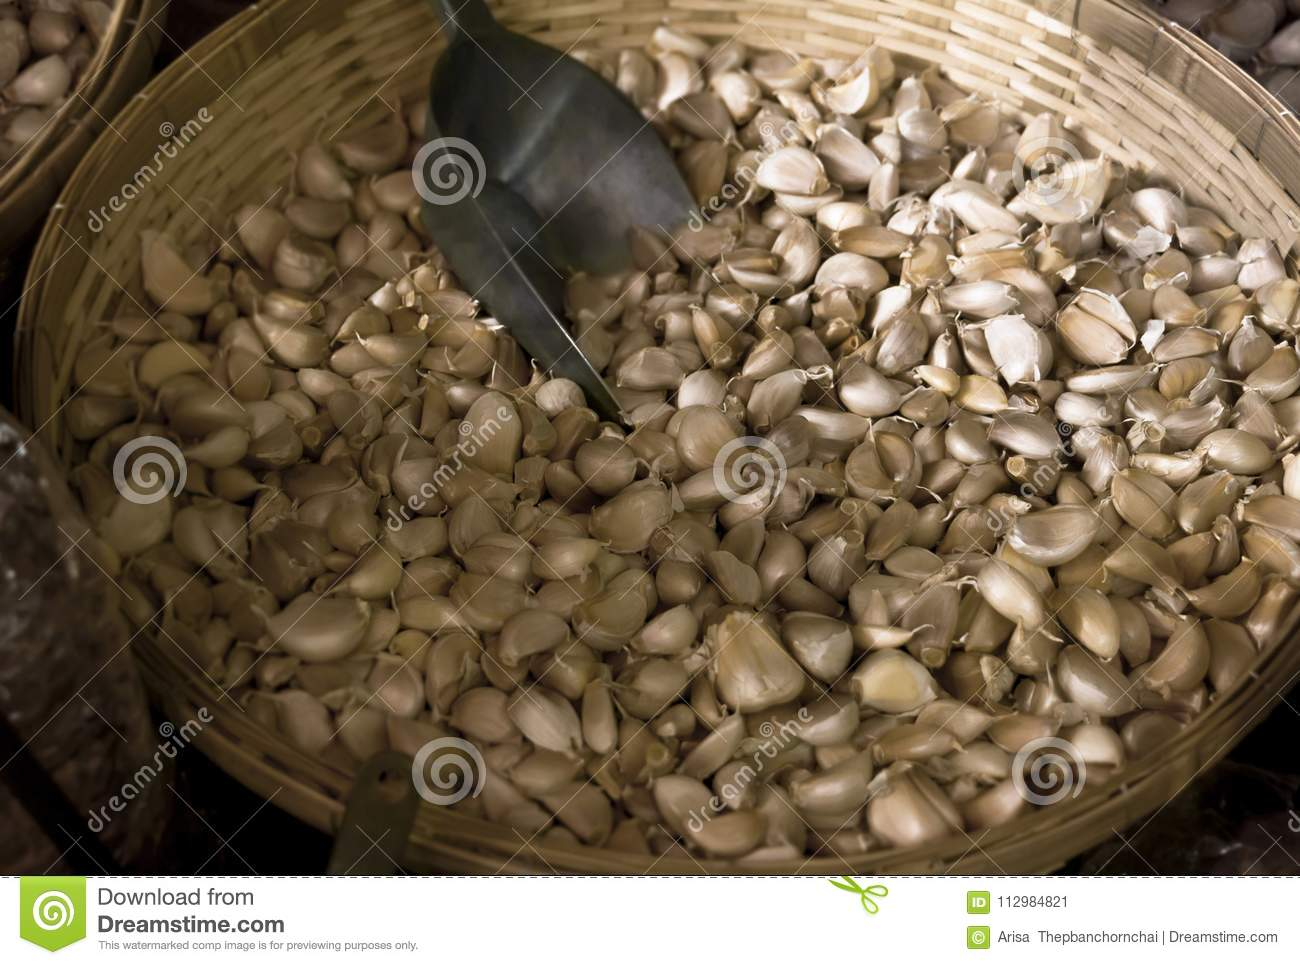 White garlic pile in basket for sale at the asian market. . Fresh garlic is one of the main ingredient in asian cuisine.